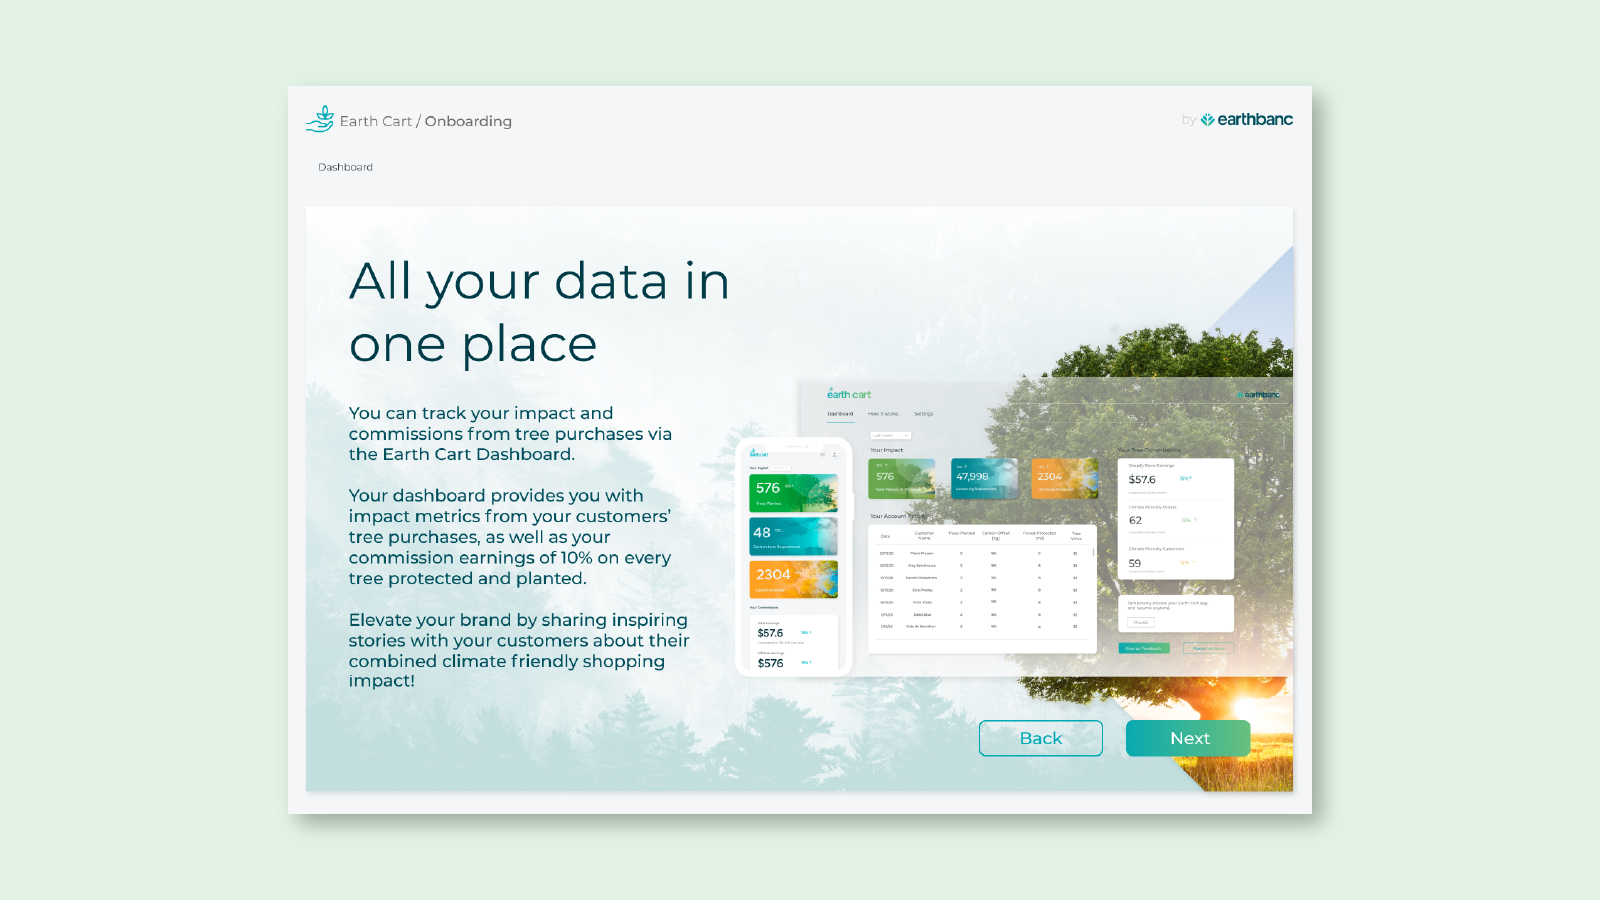 Onboarding_All your data in one place_on Desktop